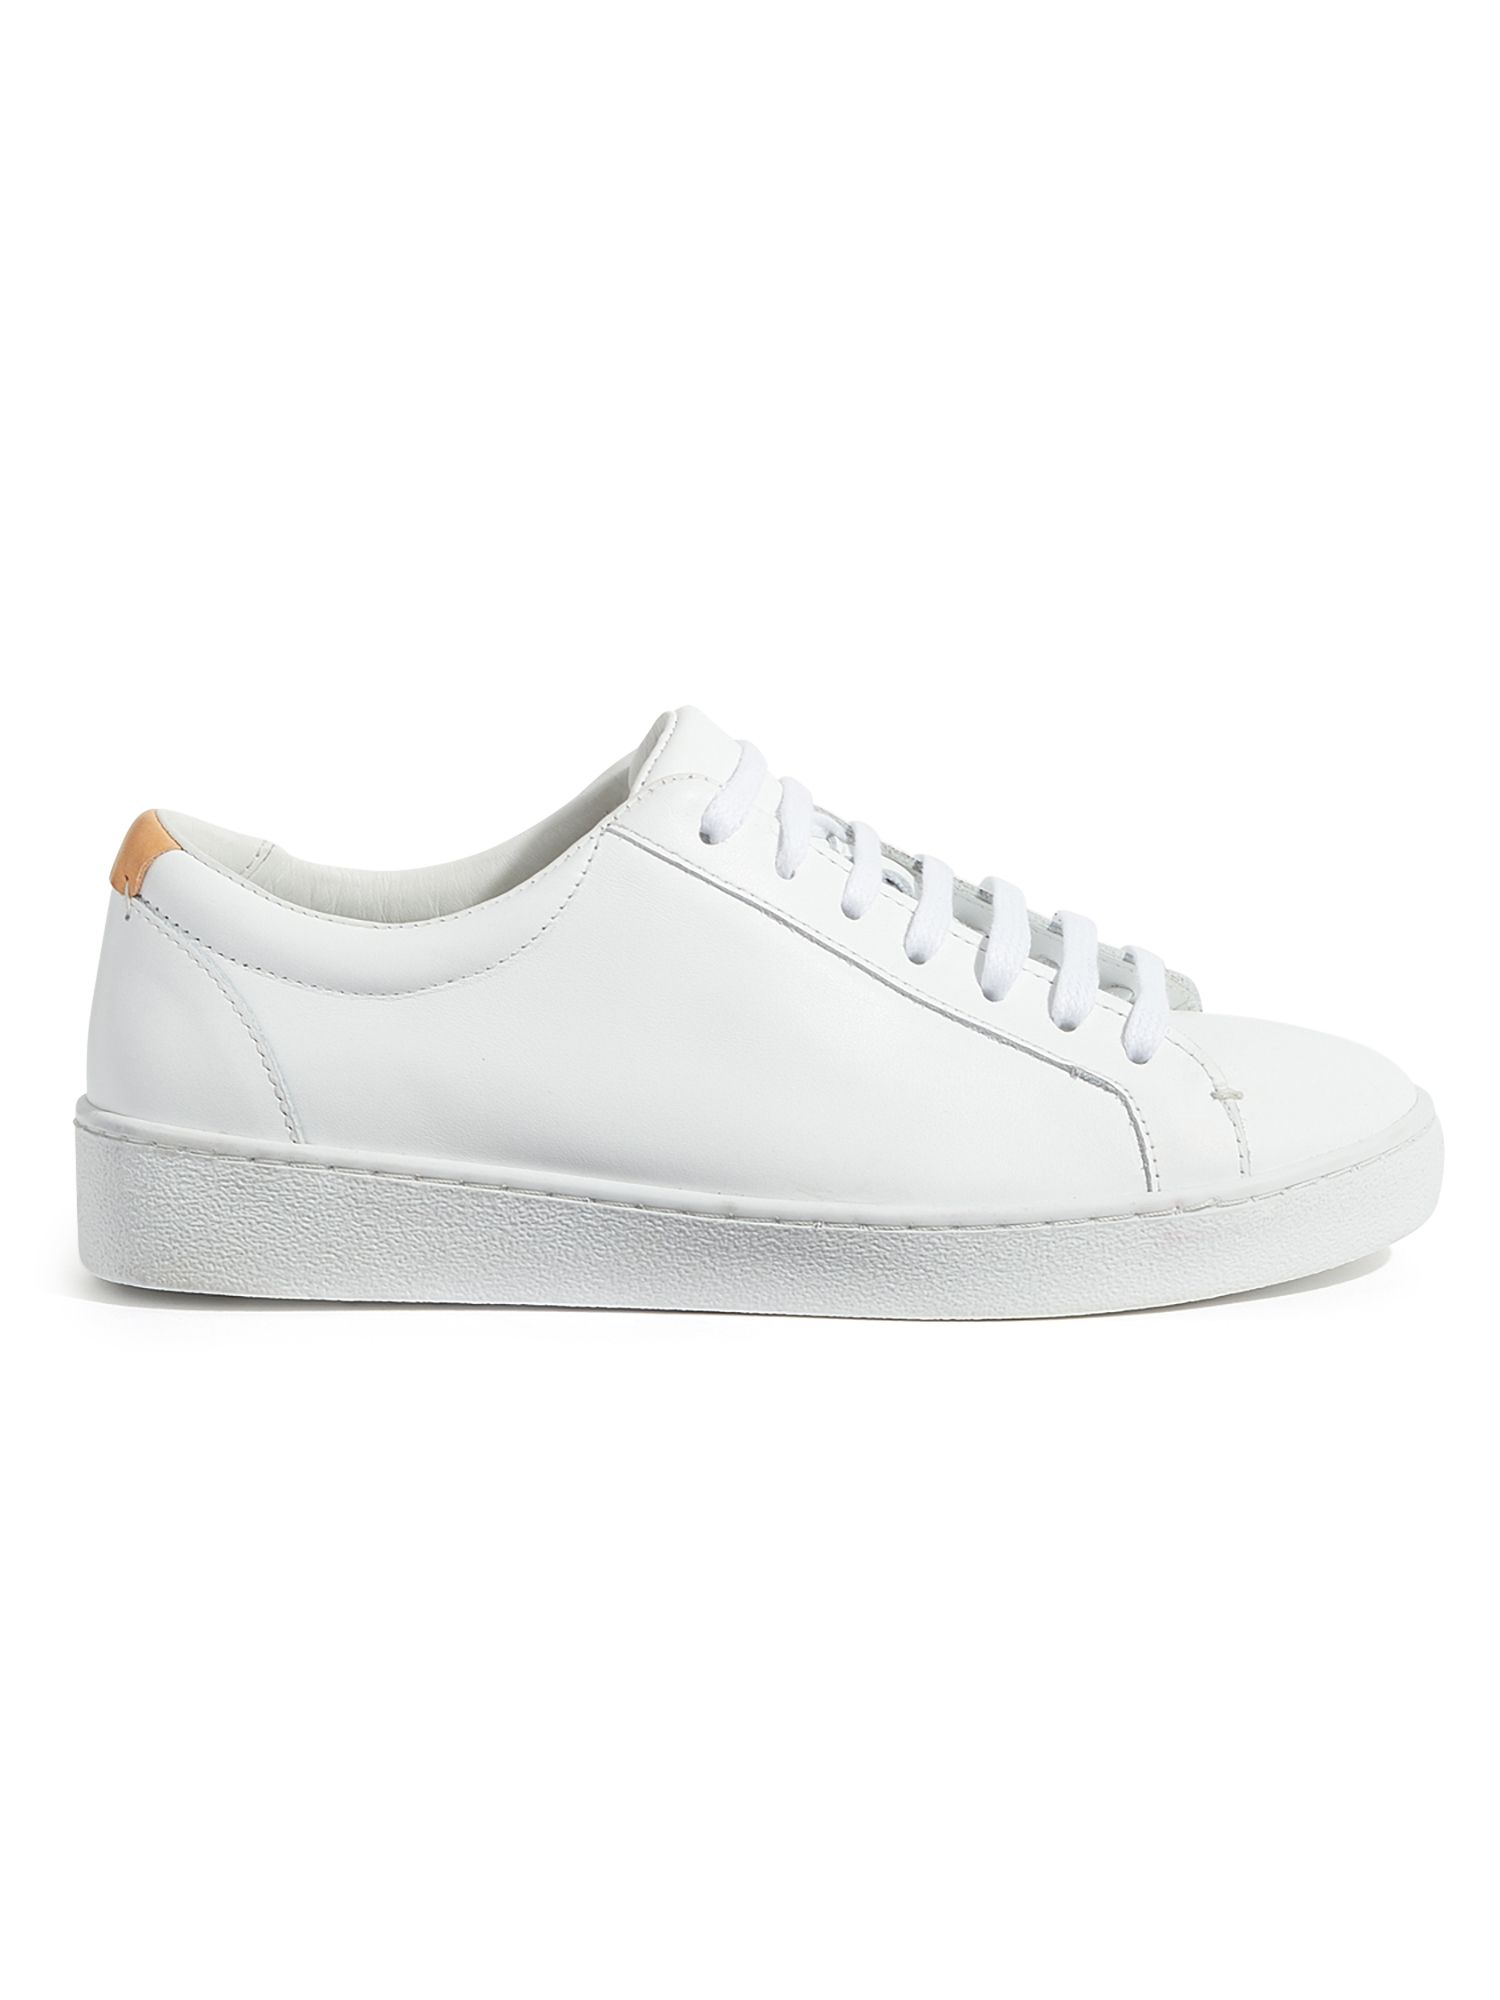 Jigsaw Amour Lace Up Trainers, White